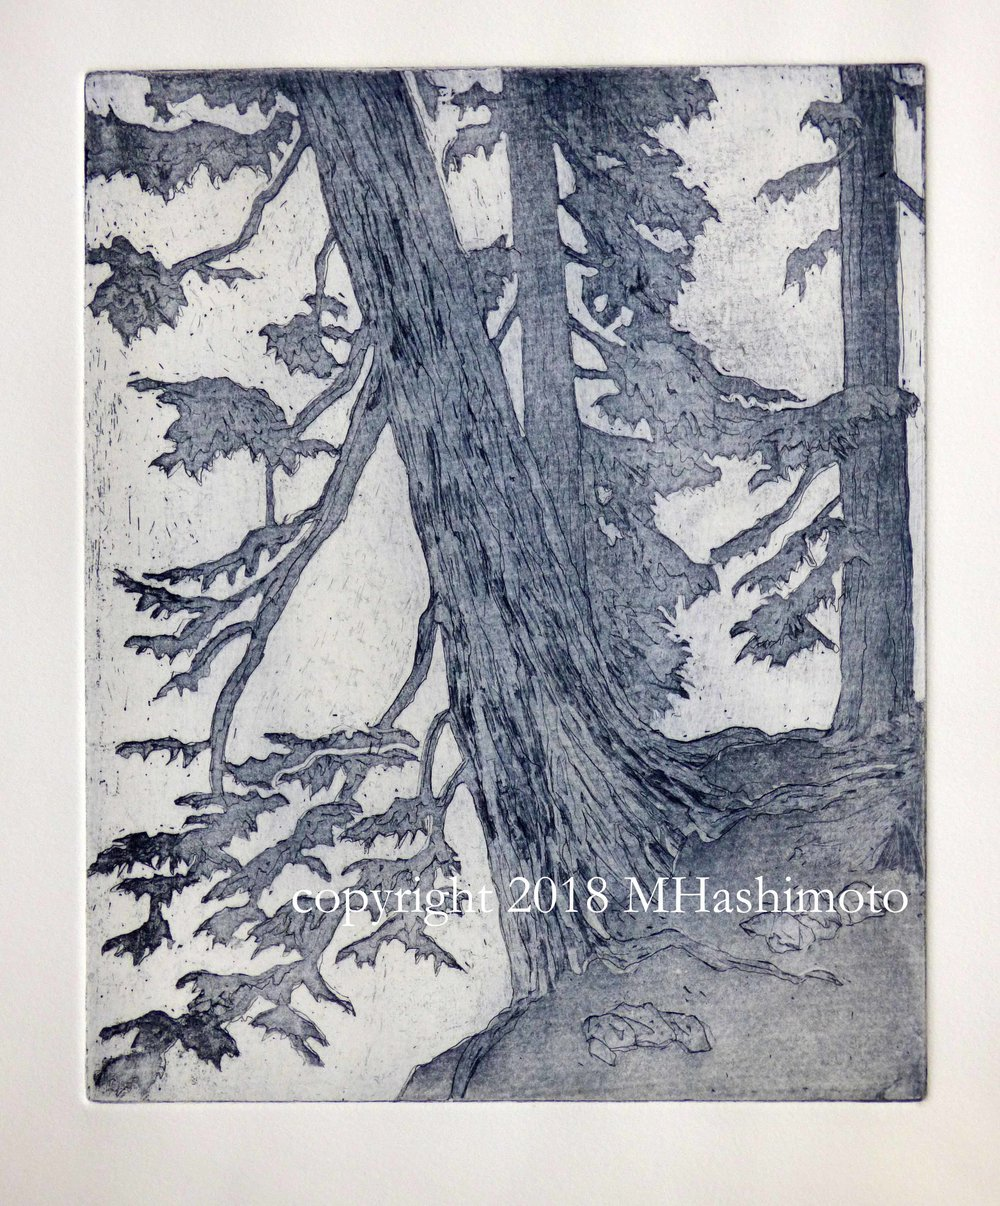 Hemlock, Pacific Crest Trail, $95